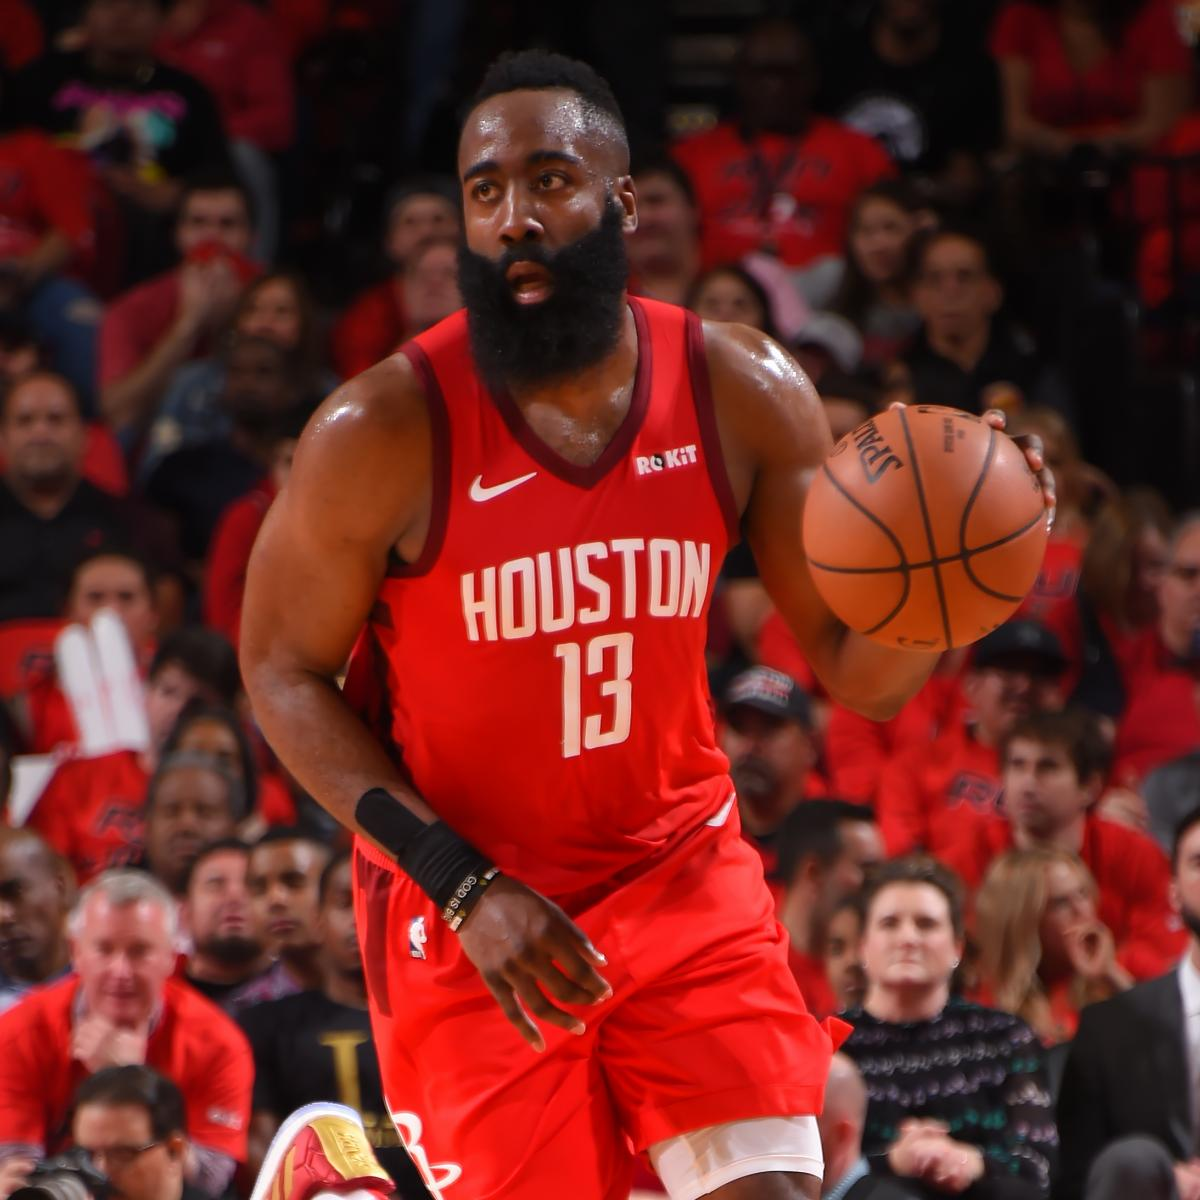 James Harden Quadruple Team: James Harden Drops 29 As Rockets Cruise To Blowout Win Vs